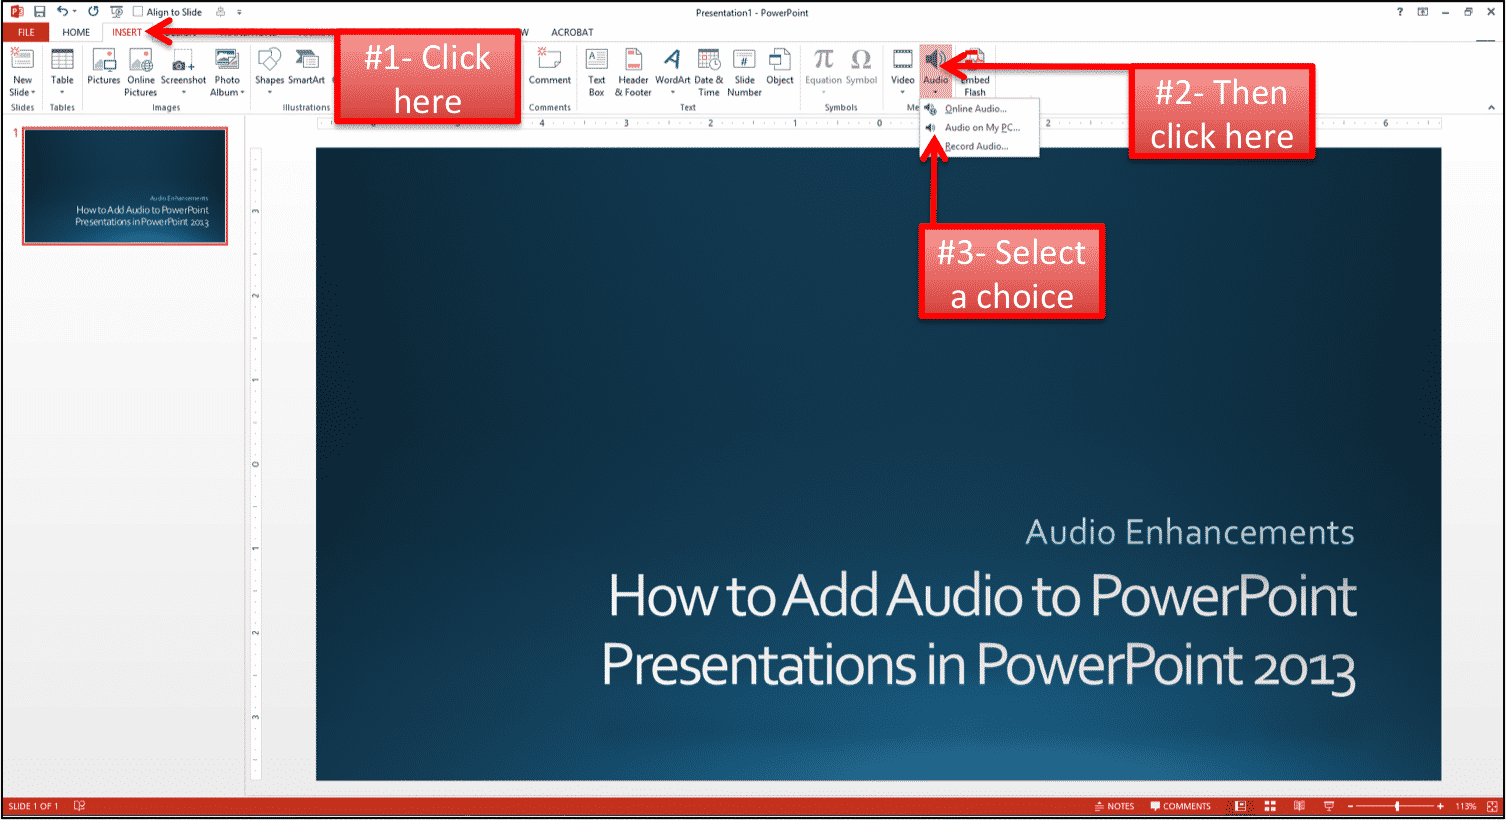 Add Music To Powerpoint Presentations In Powerpoint 2013